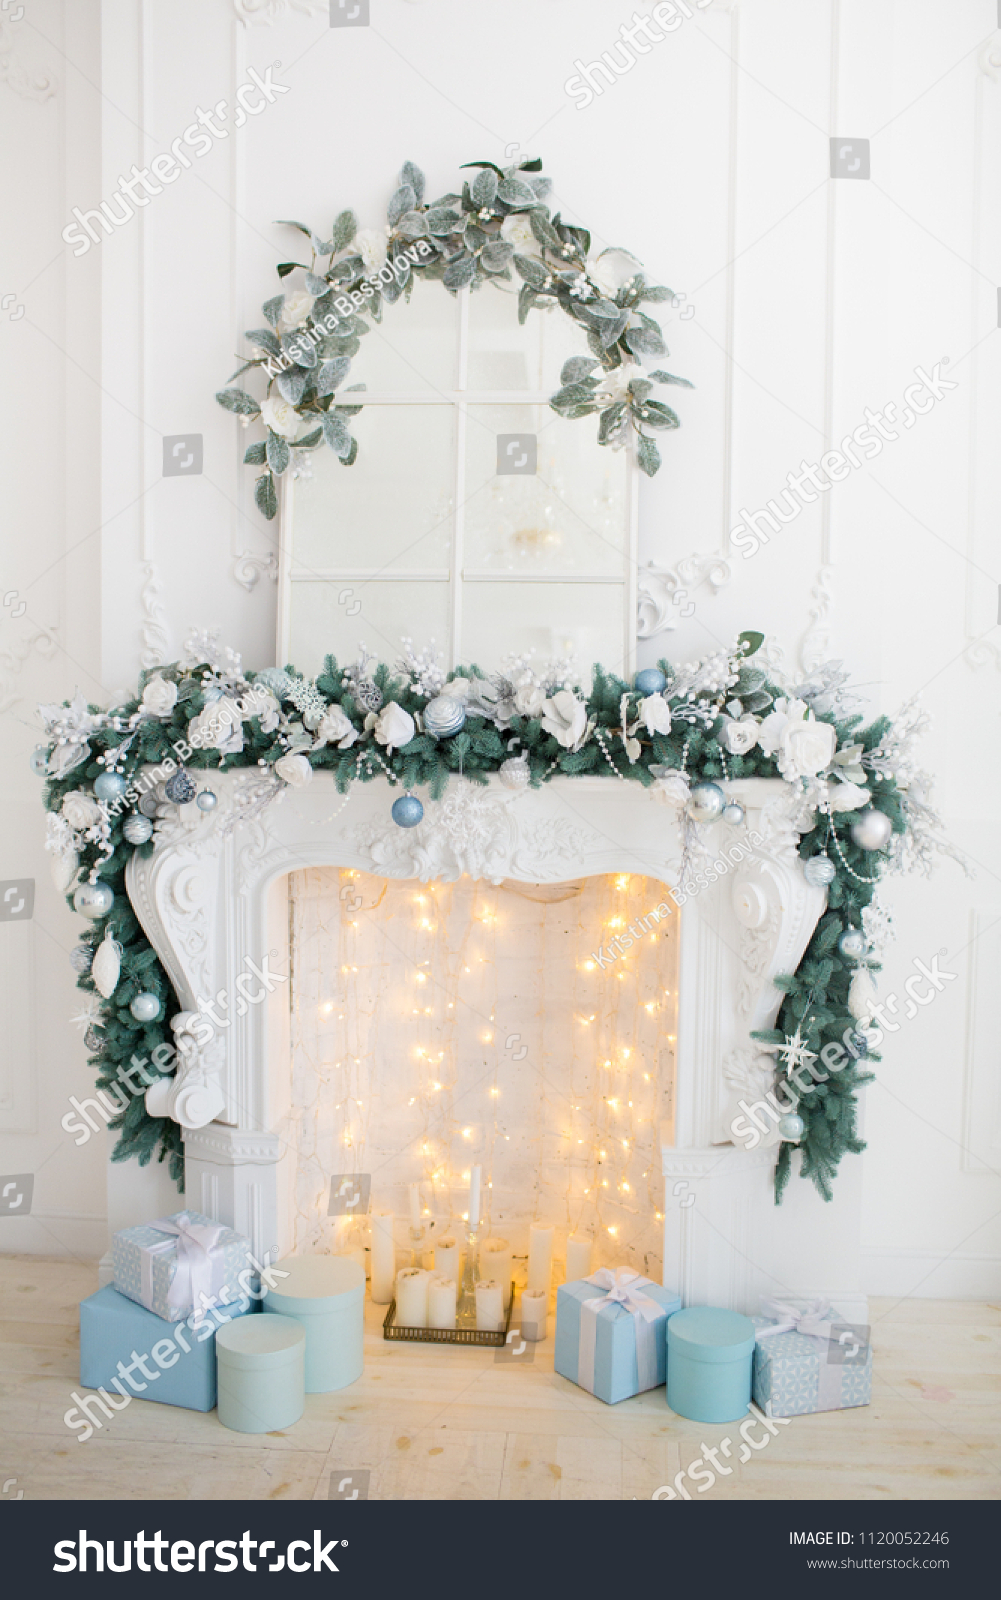 Fireplace Blue White Christmas Decorations Present Stock Photo (Edit ...